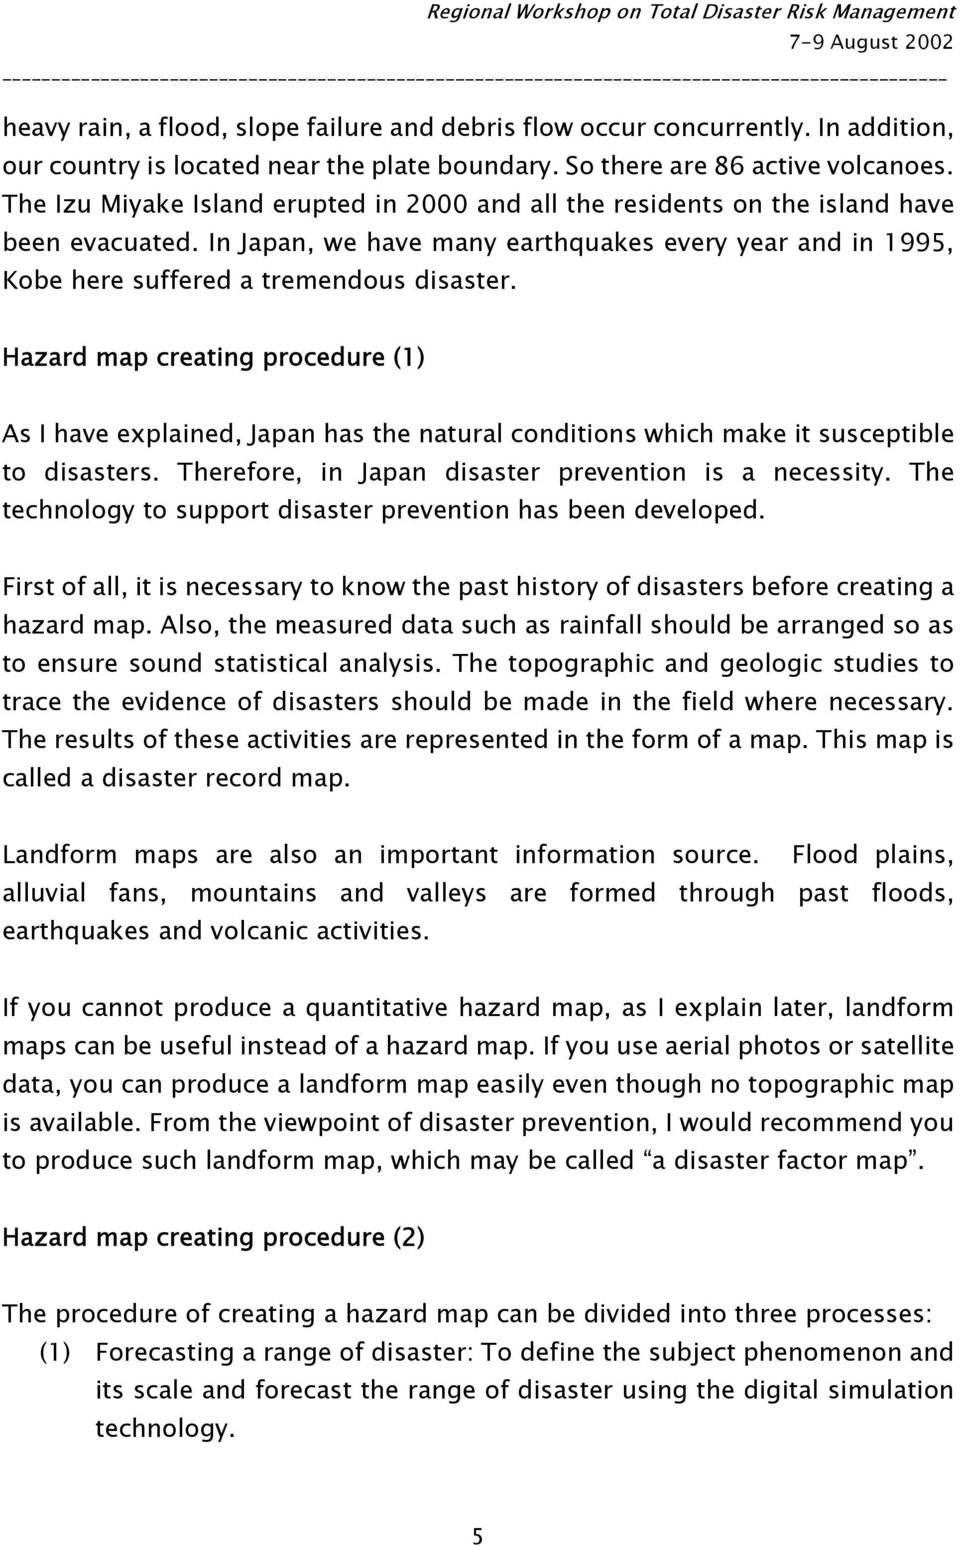 Hazard map creating procedure (1) As I have explained, Japan has the natural conditions which make it susceptible to disasters. Therefore, in Japan disaster prevention is a necessity.